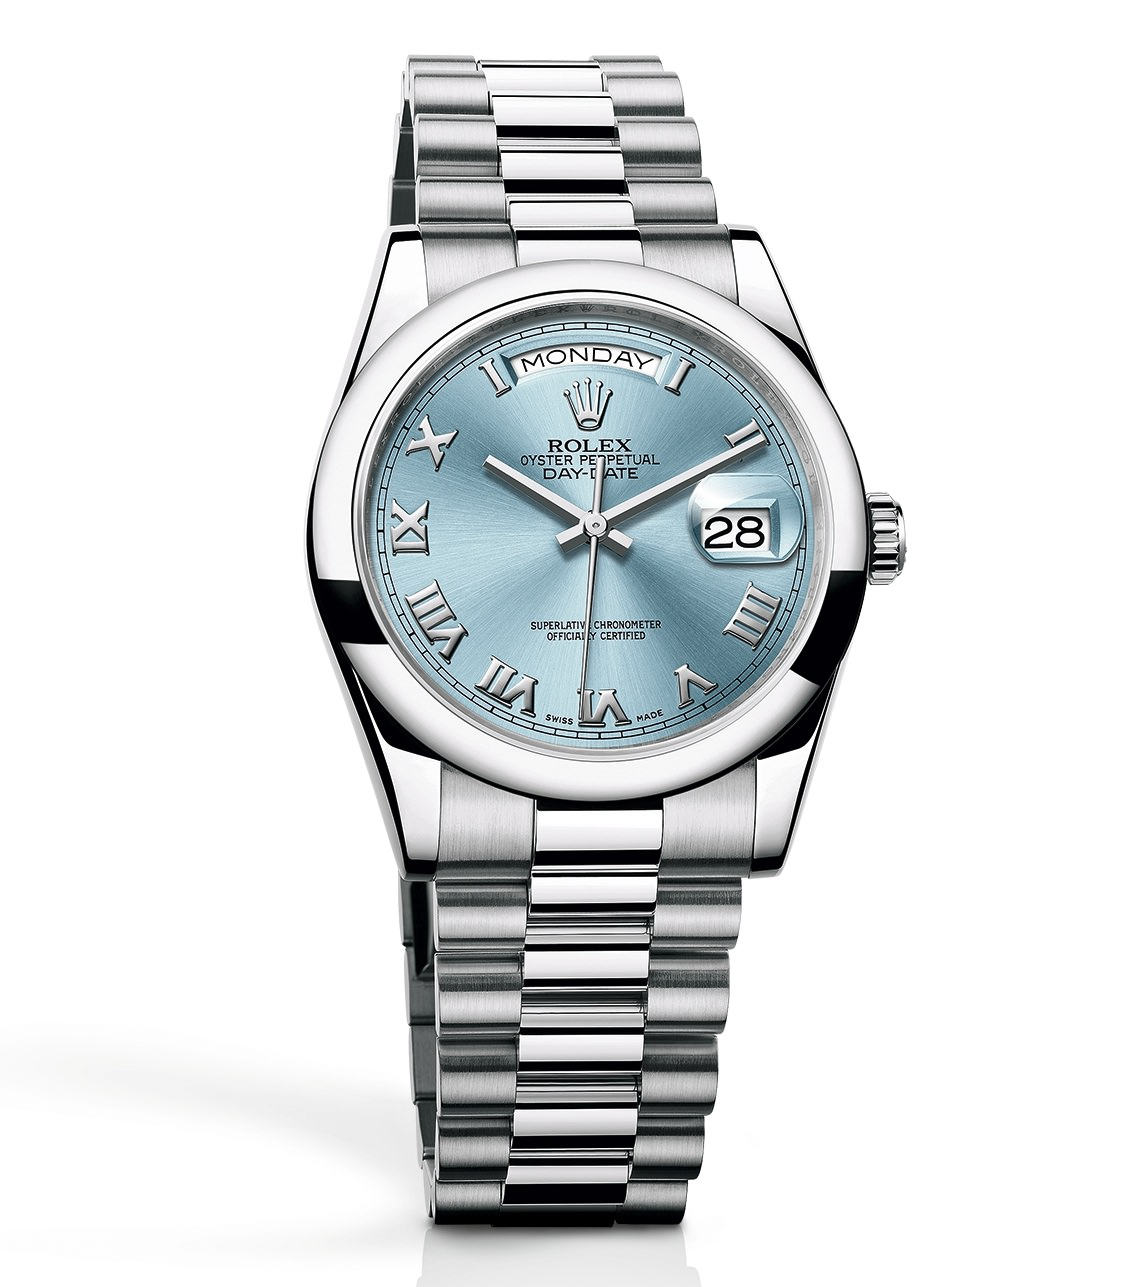 Rolex Oyster Perpetual Day-Date 36 in Platin